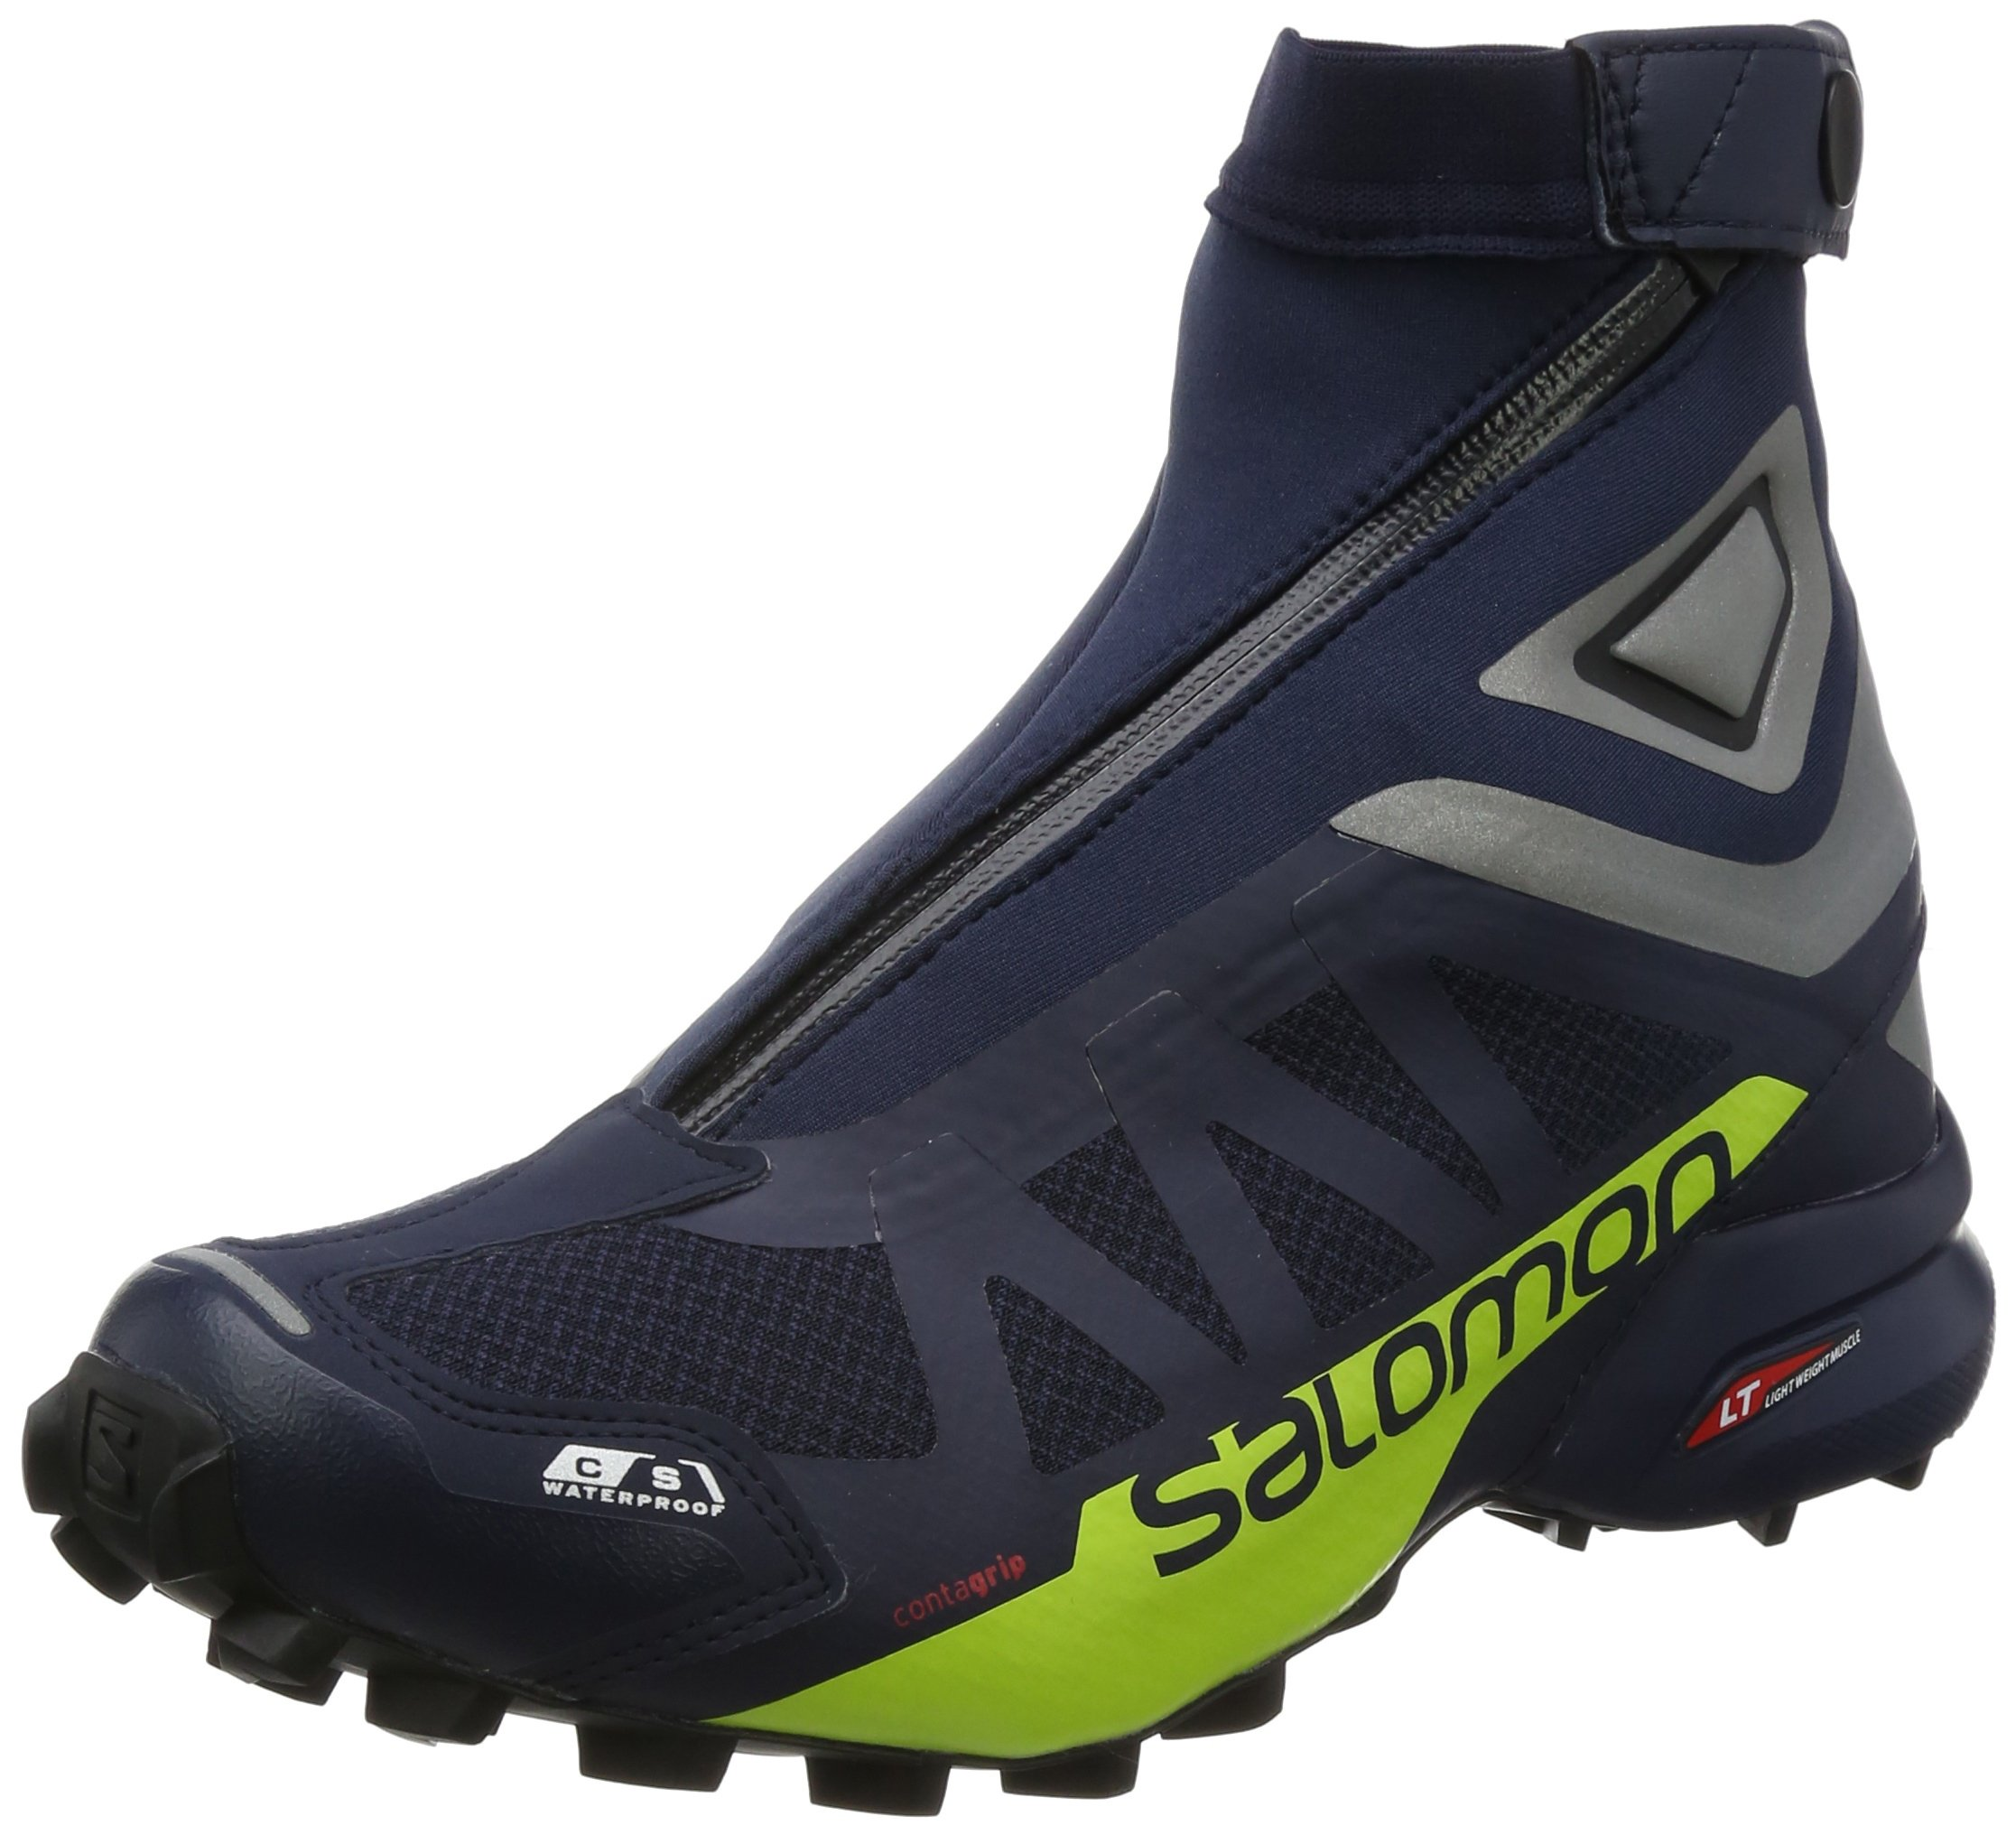 Salomon Snowcross 2 CS Waterproof Trail Running Shoe - Men's-Navy Blazer/Reflective L39451200-8.5